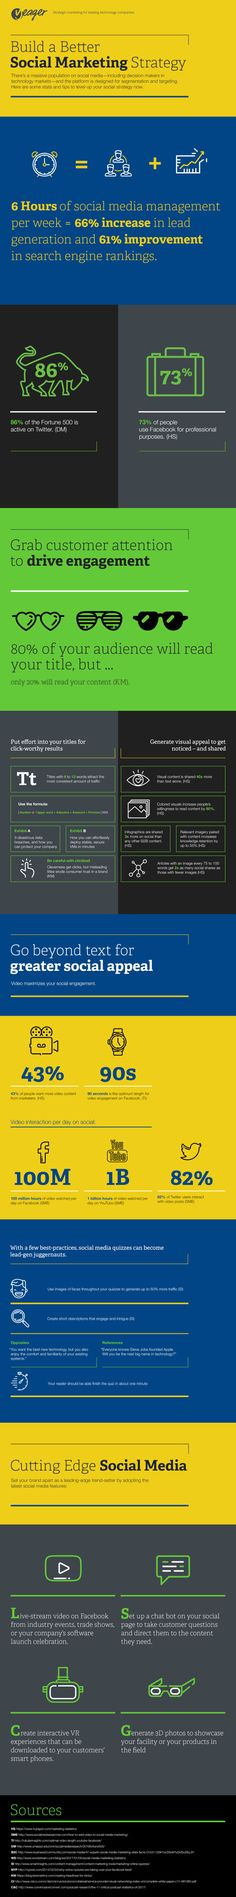 How to Build a Sustainable Social Marketing Strategy [Infographic] | Social Media Today